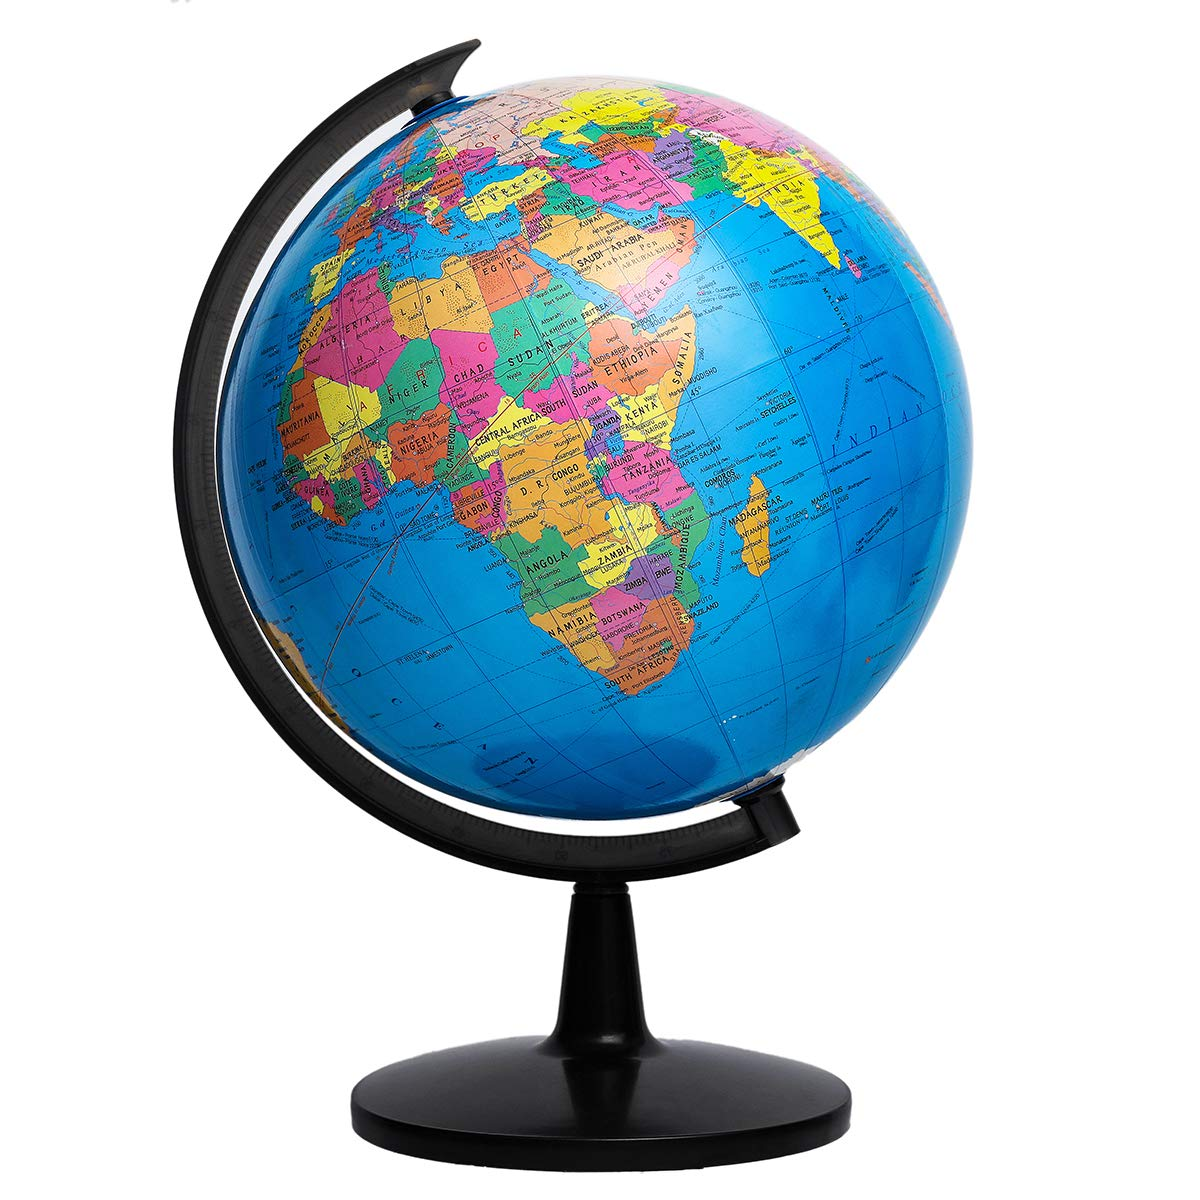 KingSo World Globe, 12.6'' Globe of Perfect Spinning Globe for Kids, Geography Students, Teachers, Easy Rotating Swivel